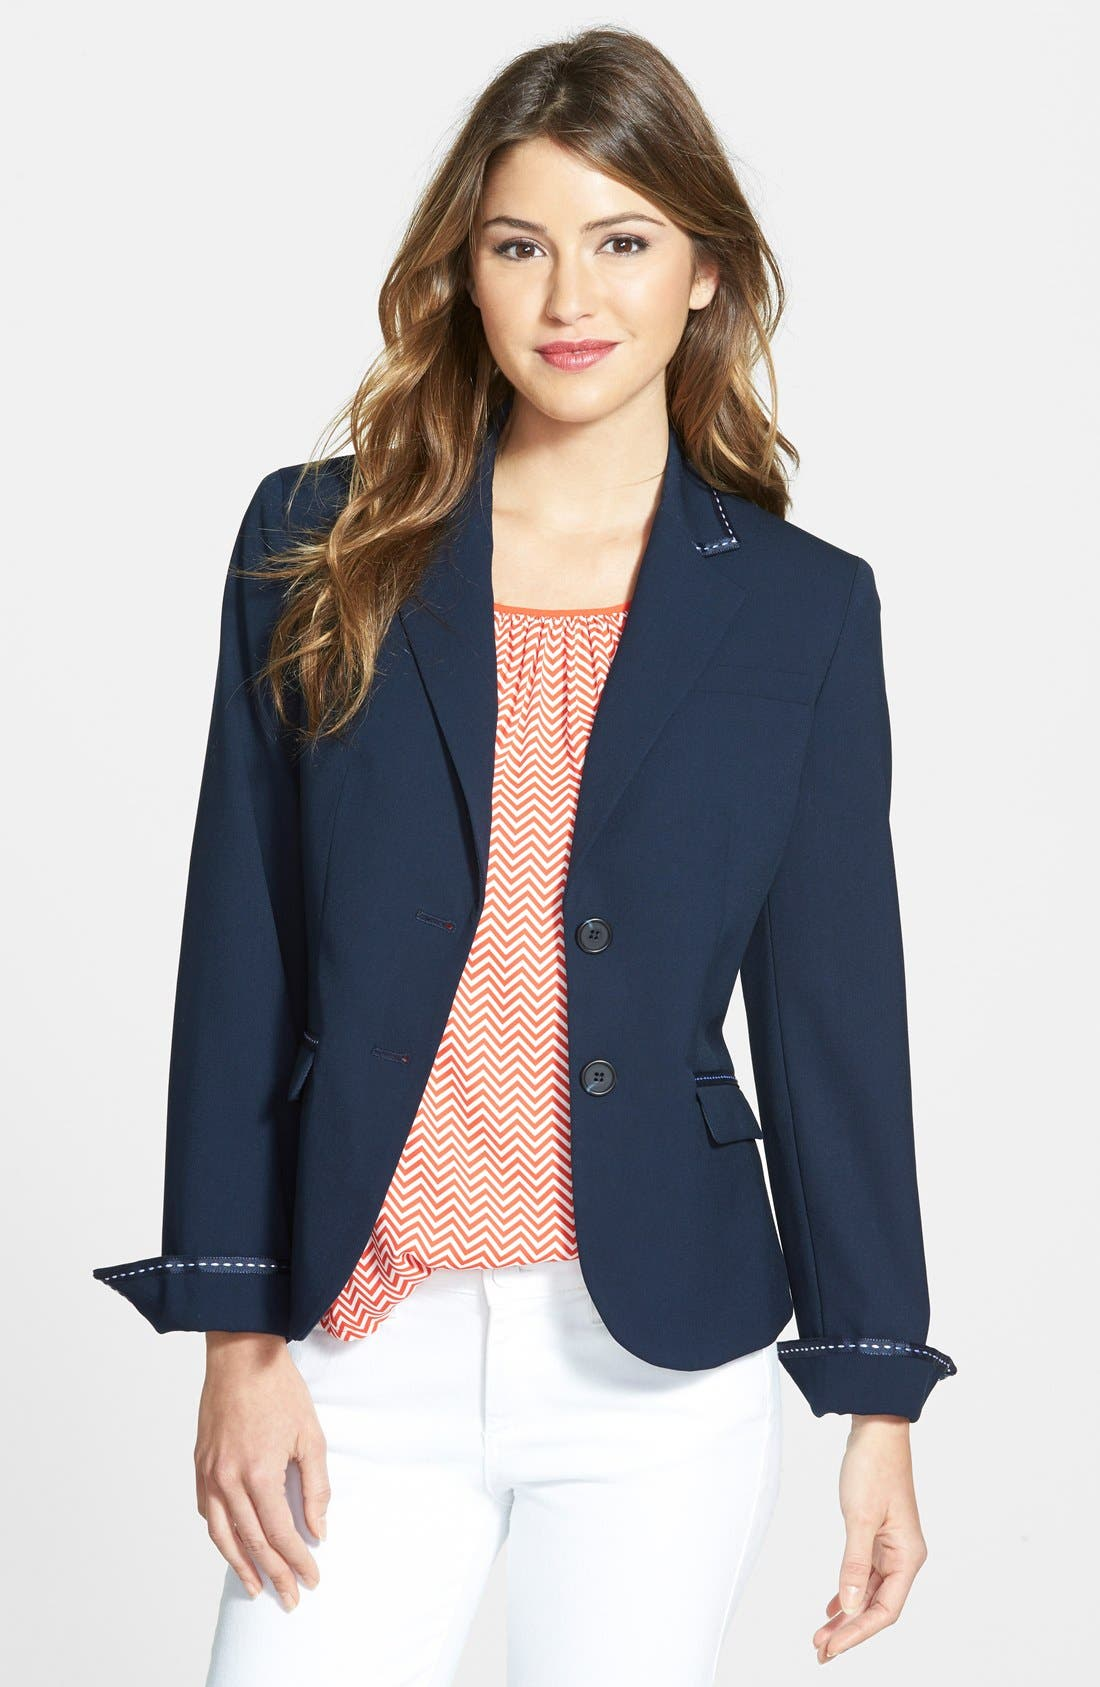 Main Image - Jones New York 'Olivia' Grosgrain Trim Jacket